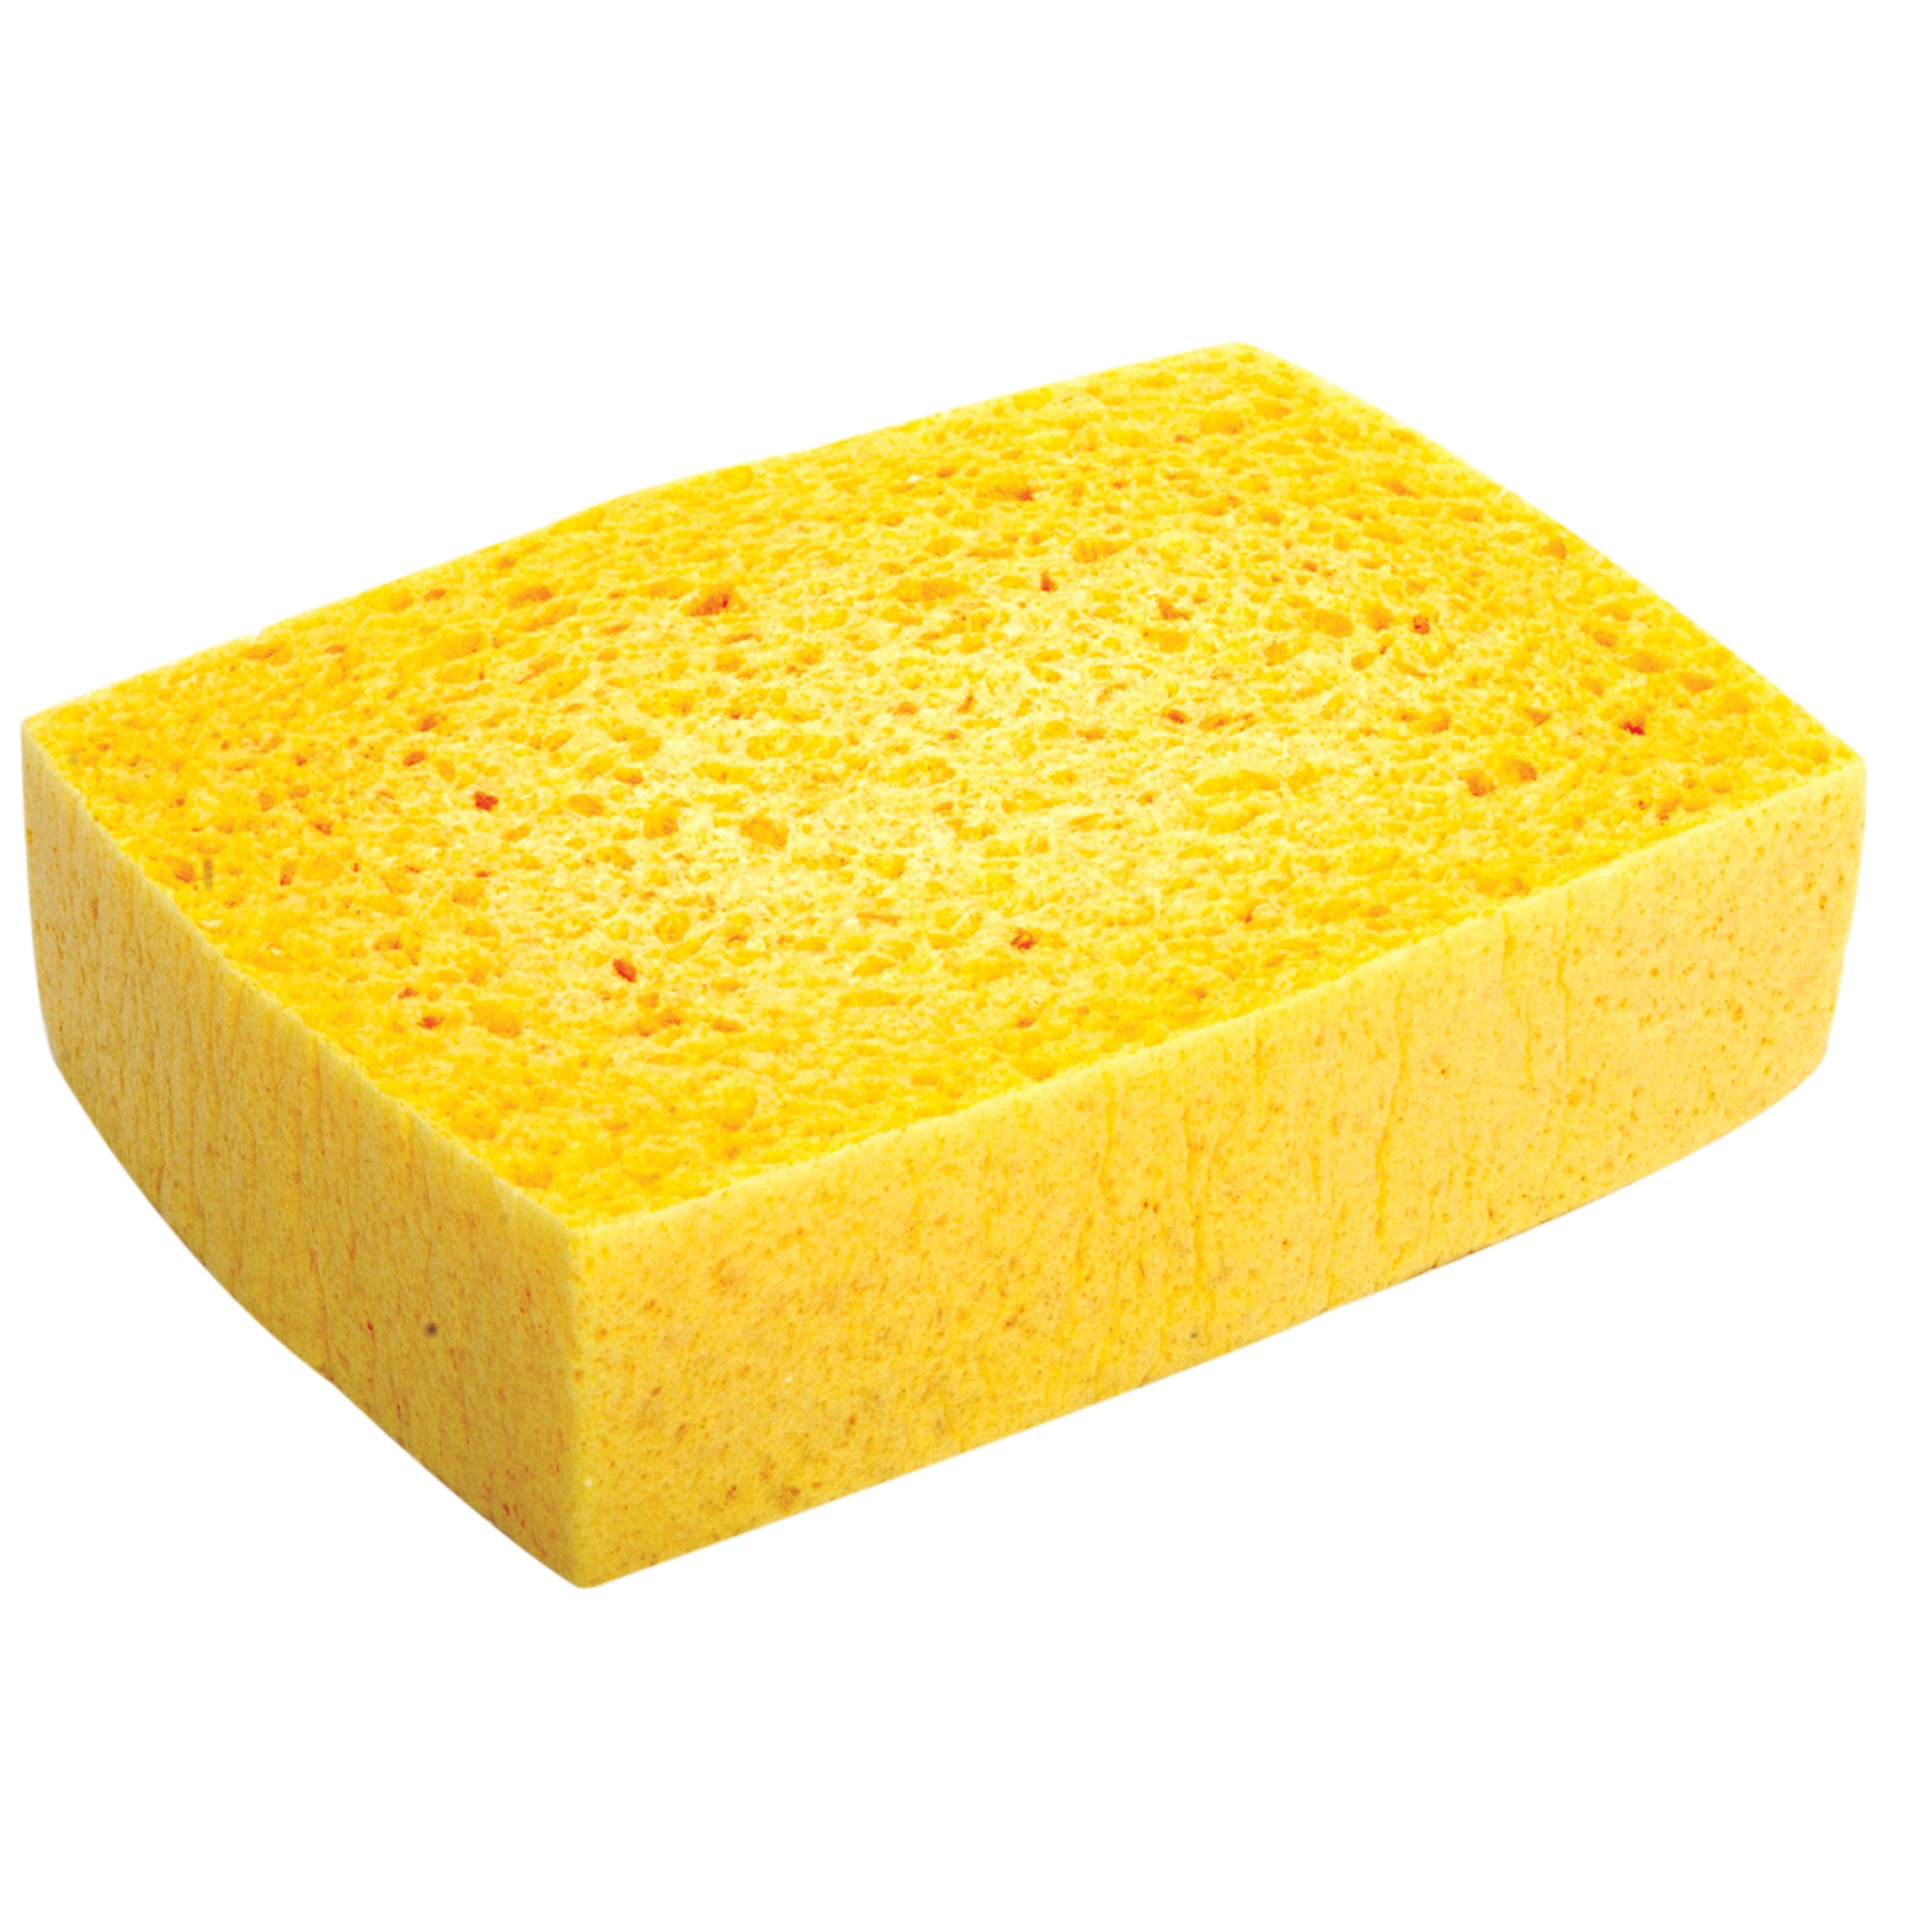 Lincoln sponge - Seven different uses of the kitchen sponge ...